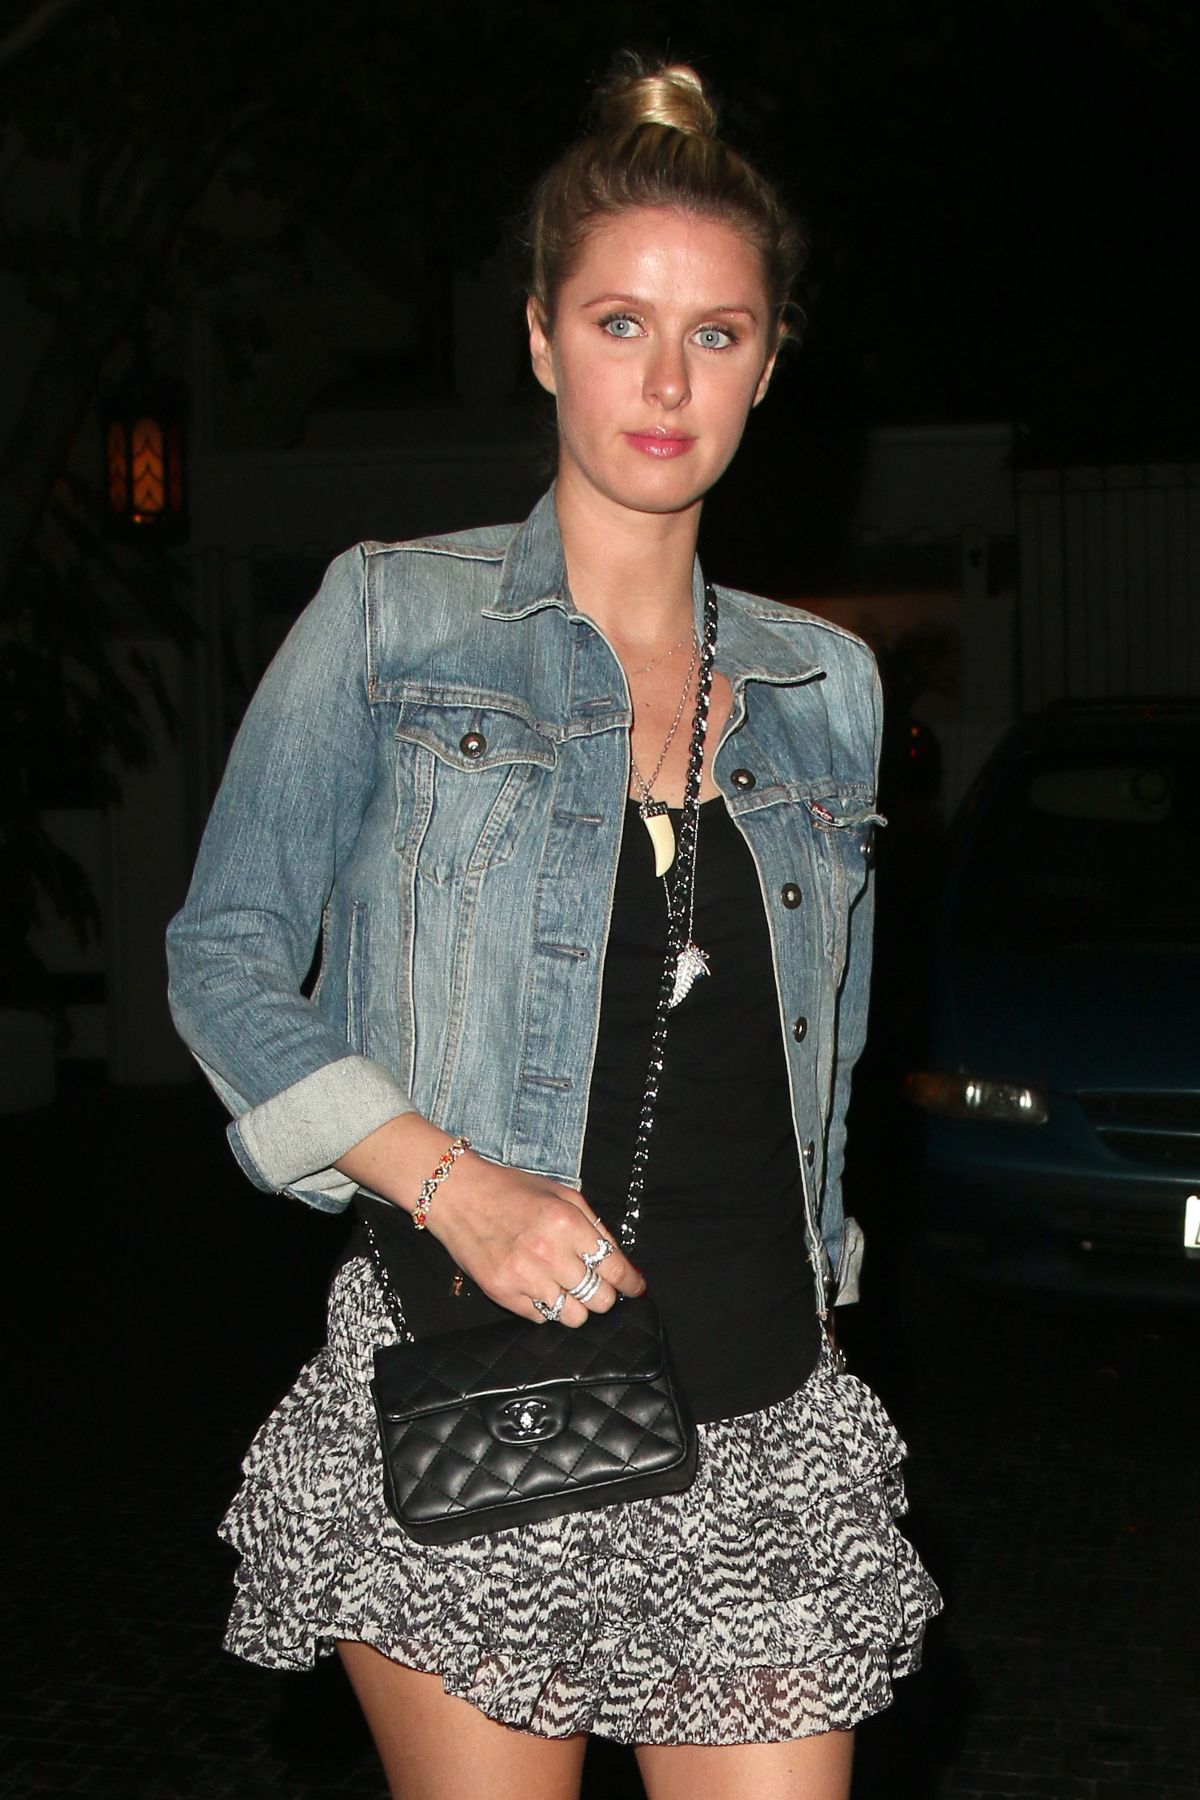 Nicky Hilton Leaving The Chateau Marmont In Los Angeles